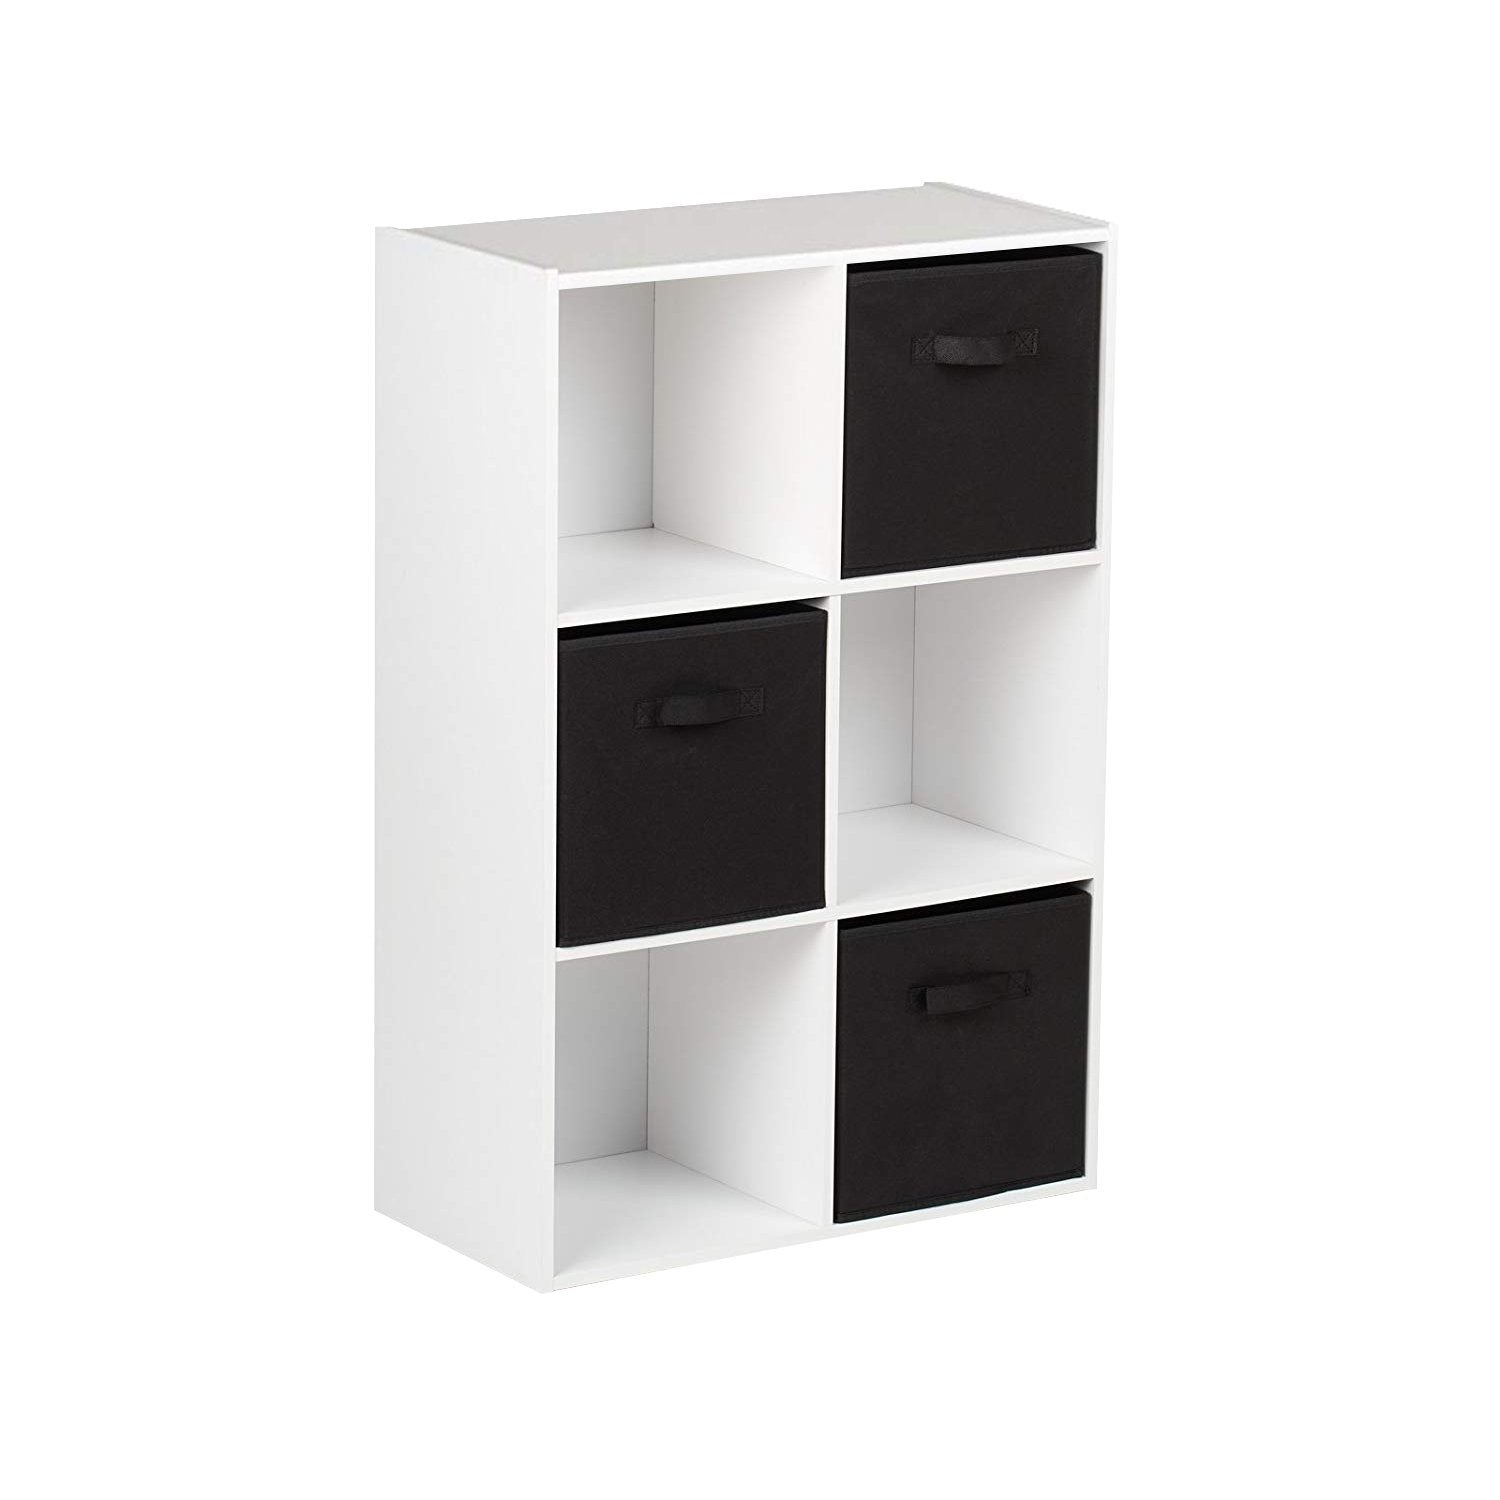 6 Cube White Bookcase Wooden Display Unit Shelving Storage Bookshelf Shelves (Black Basket) - Laura James